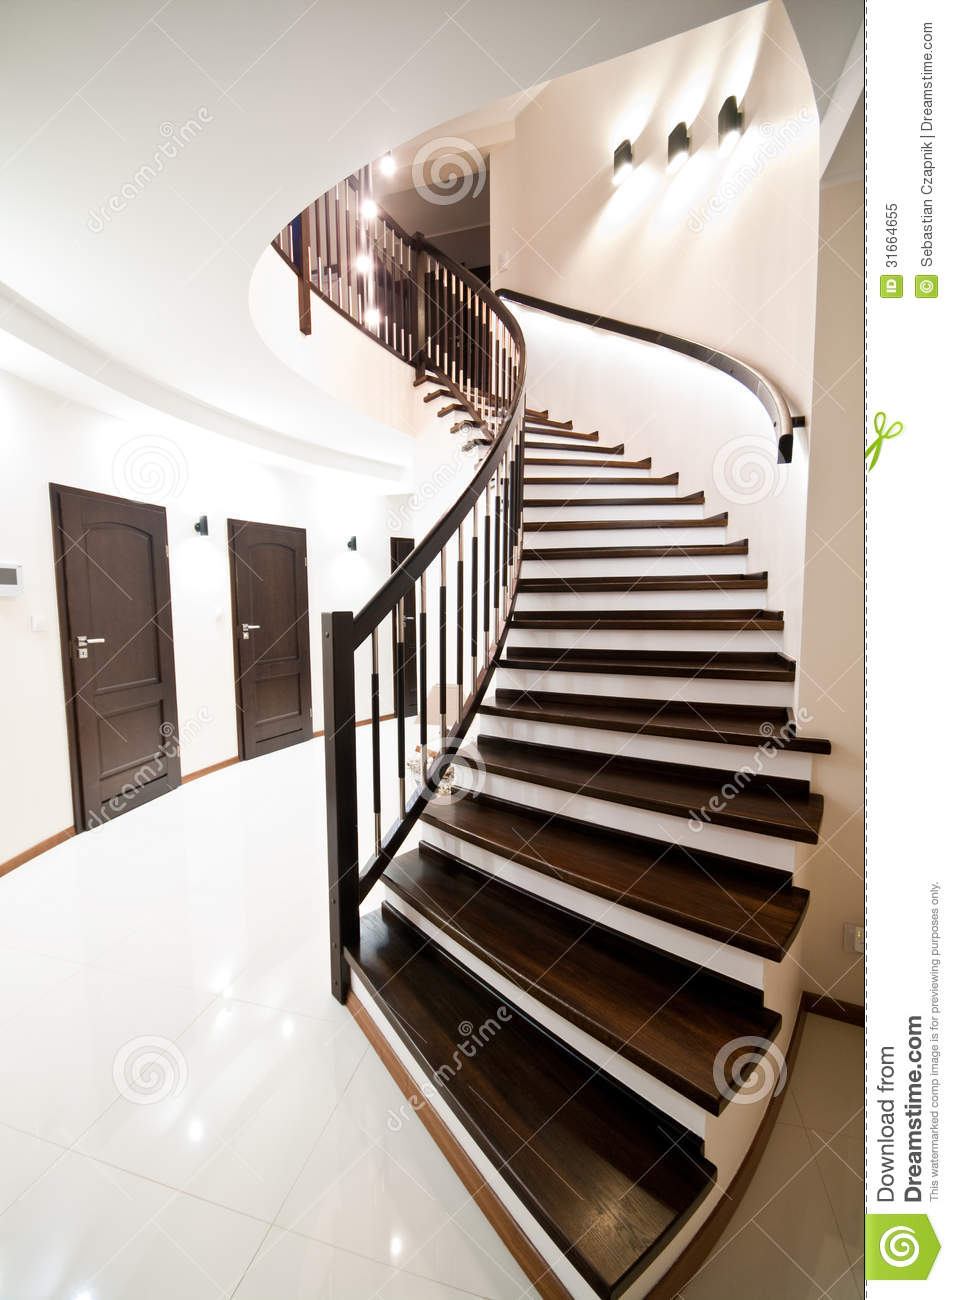 Spiral Stairs Stock Image Image Of Still Stairs Stair